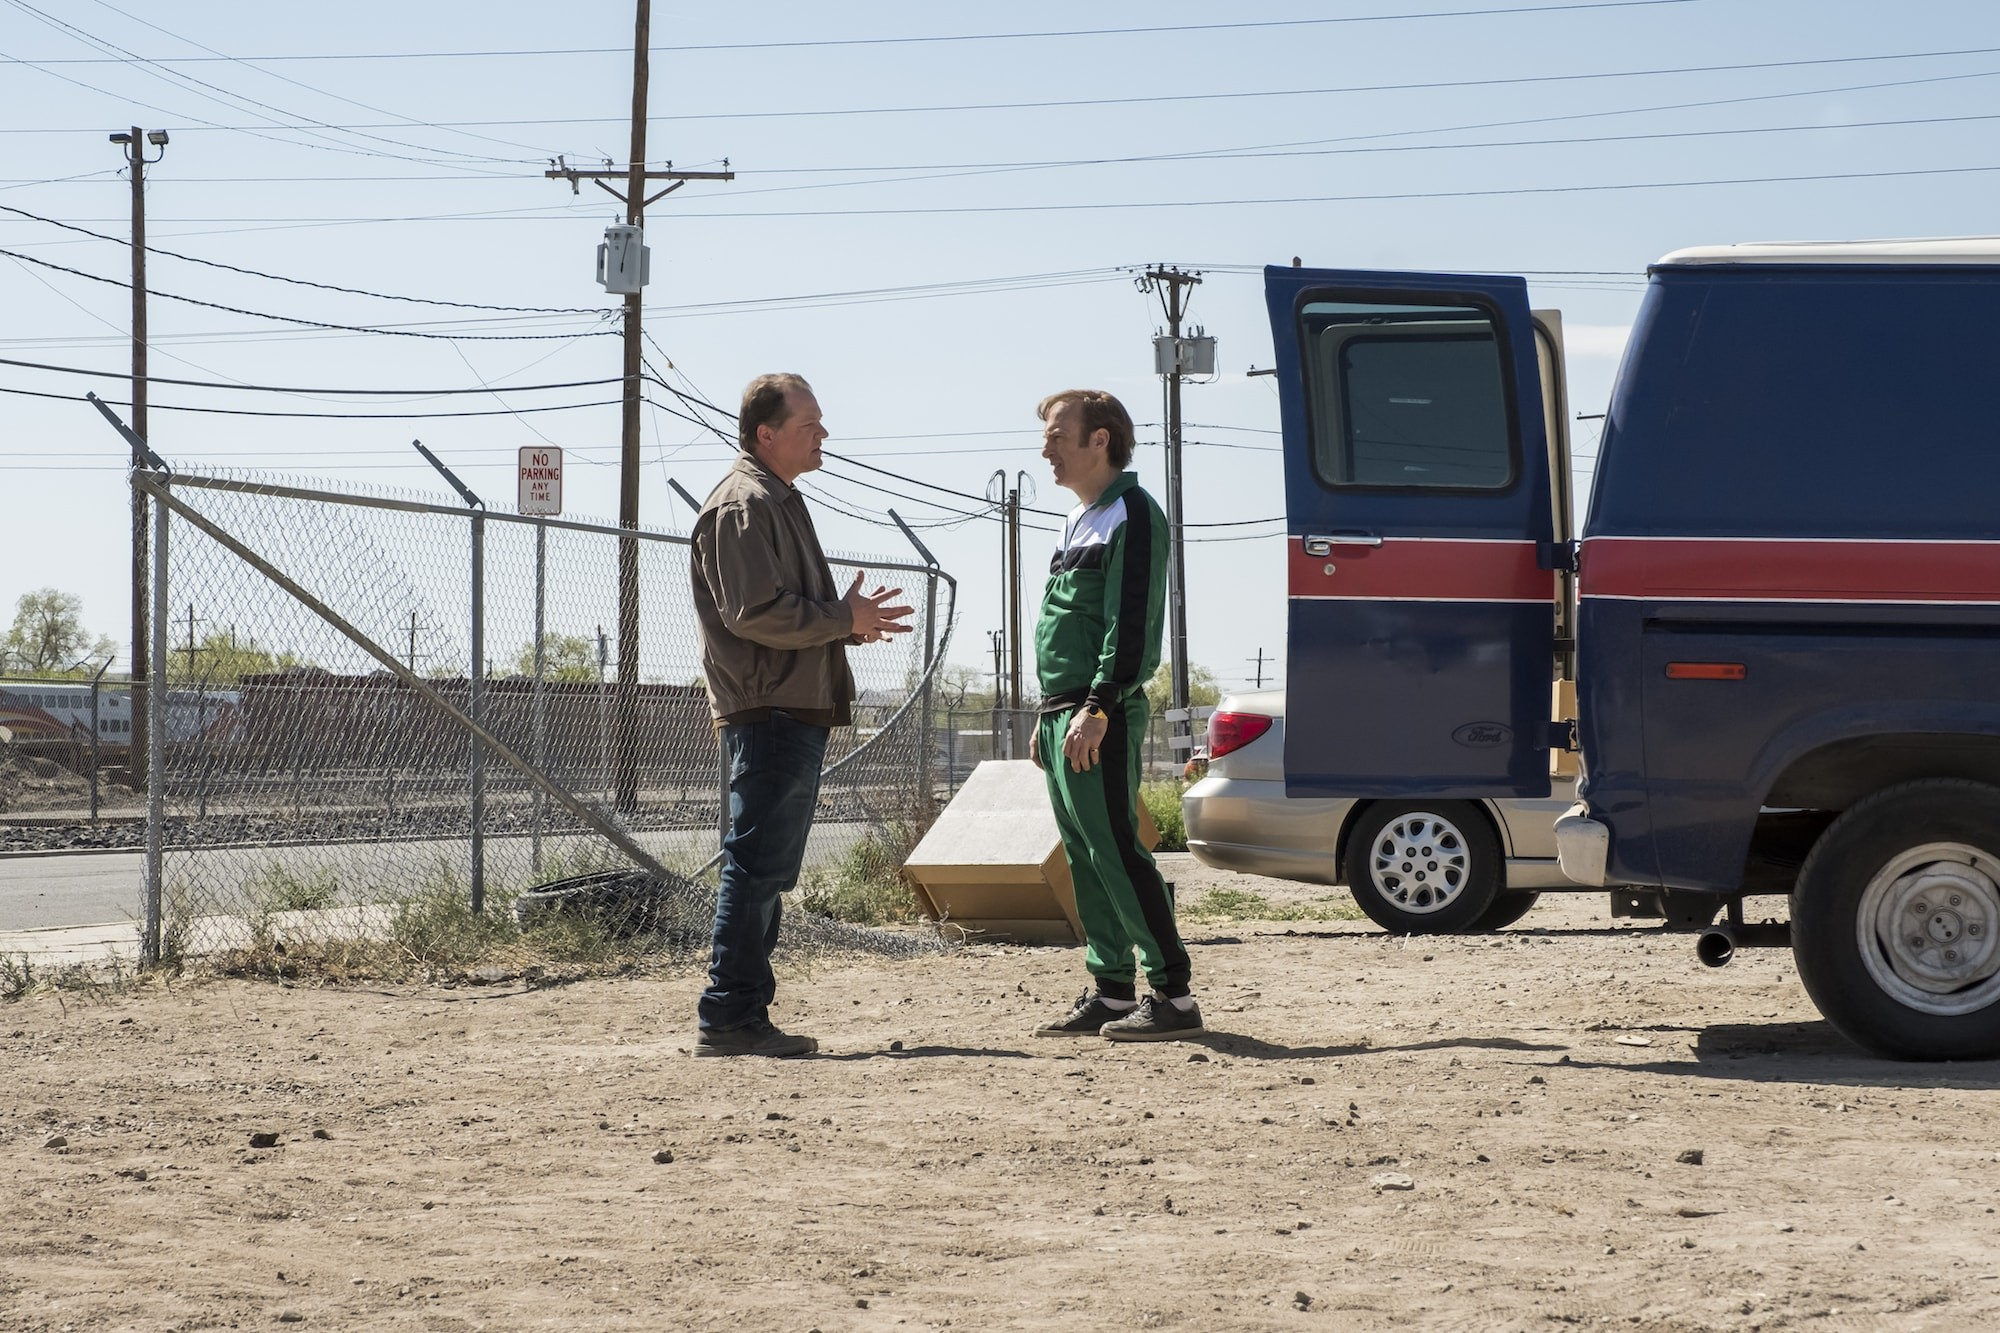 better-call-saul-season-4-images-11-min.jpg